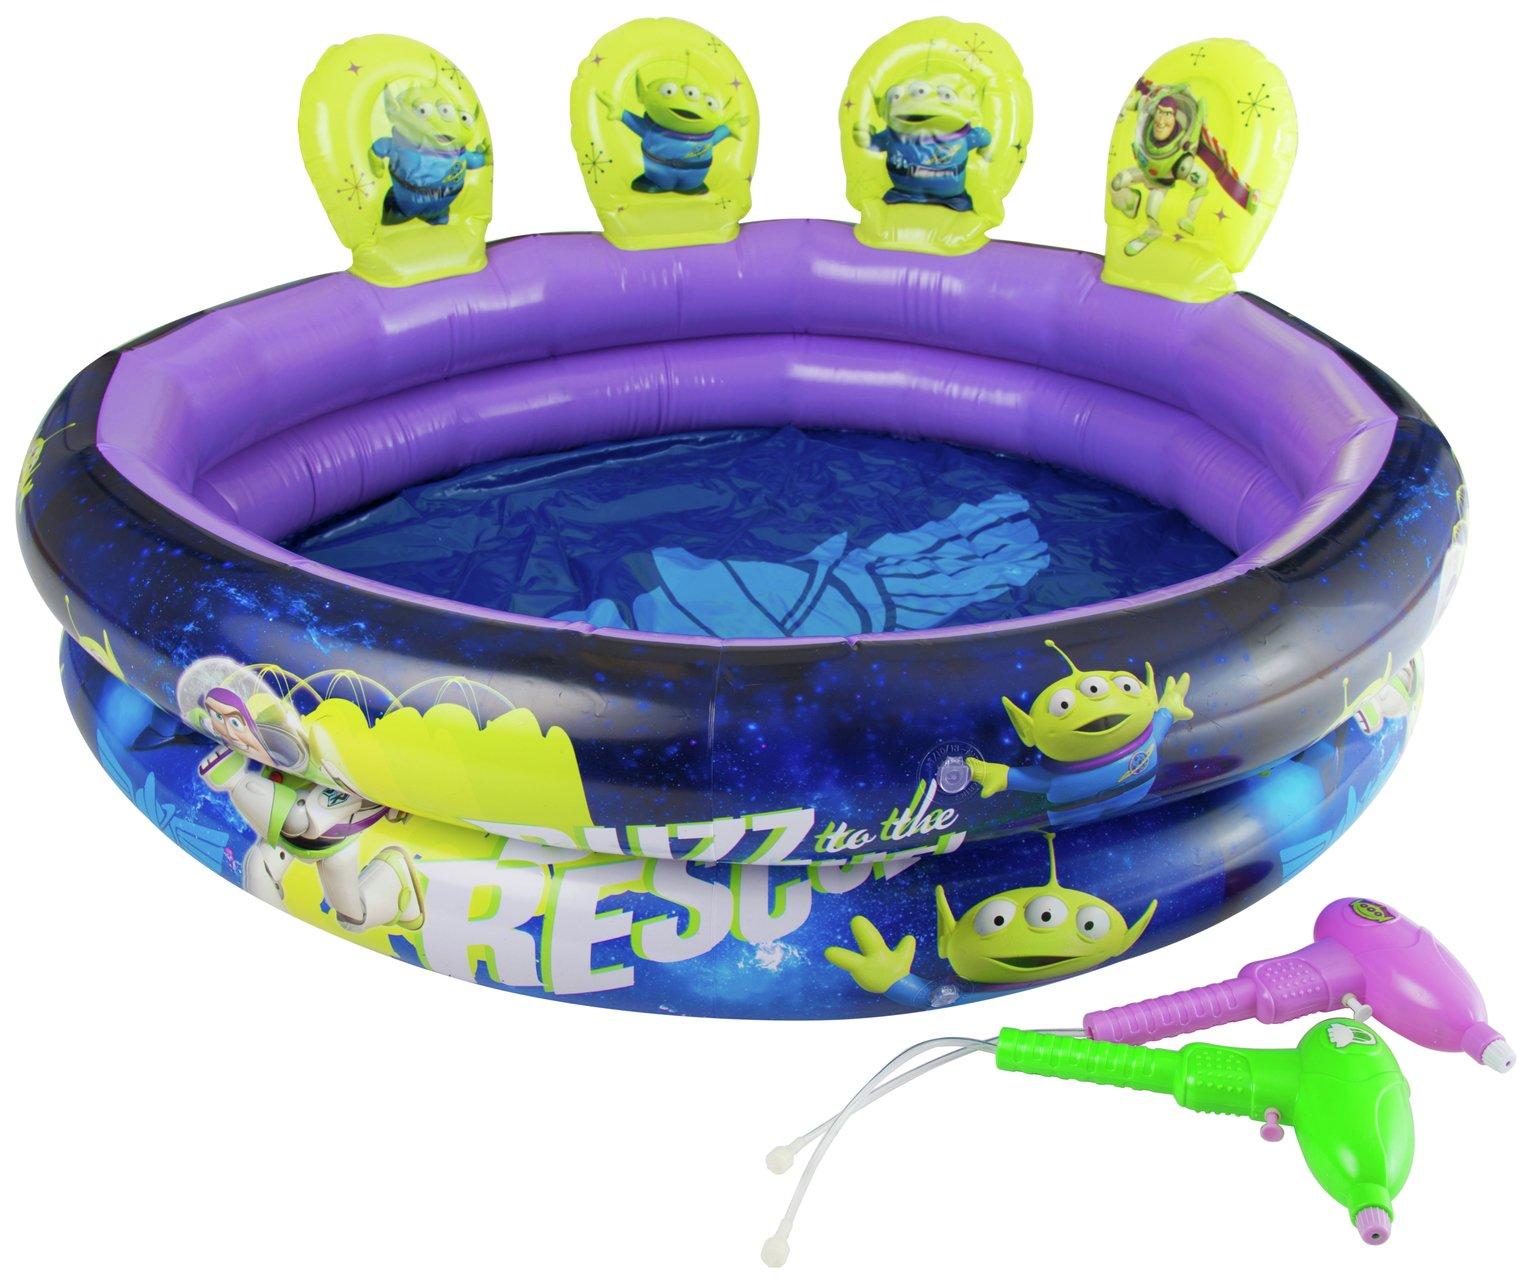 Toy Story Paddling Pool With Targets And Guns